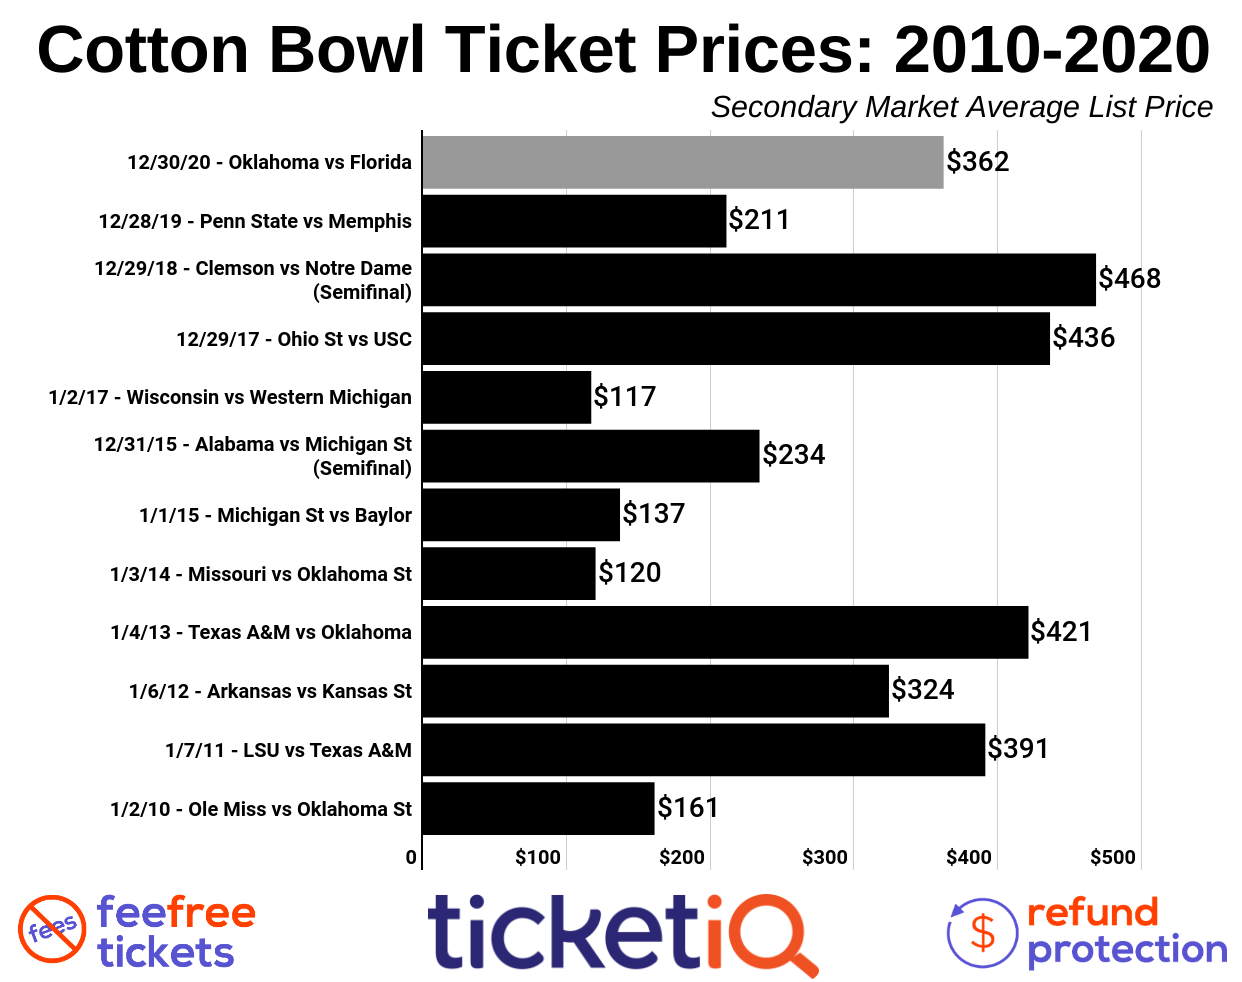 How To Find The Cheapest Cotton Bowl Tickets (Florida vs Oklahoma)